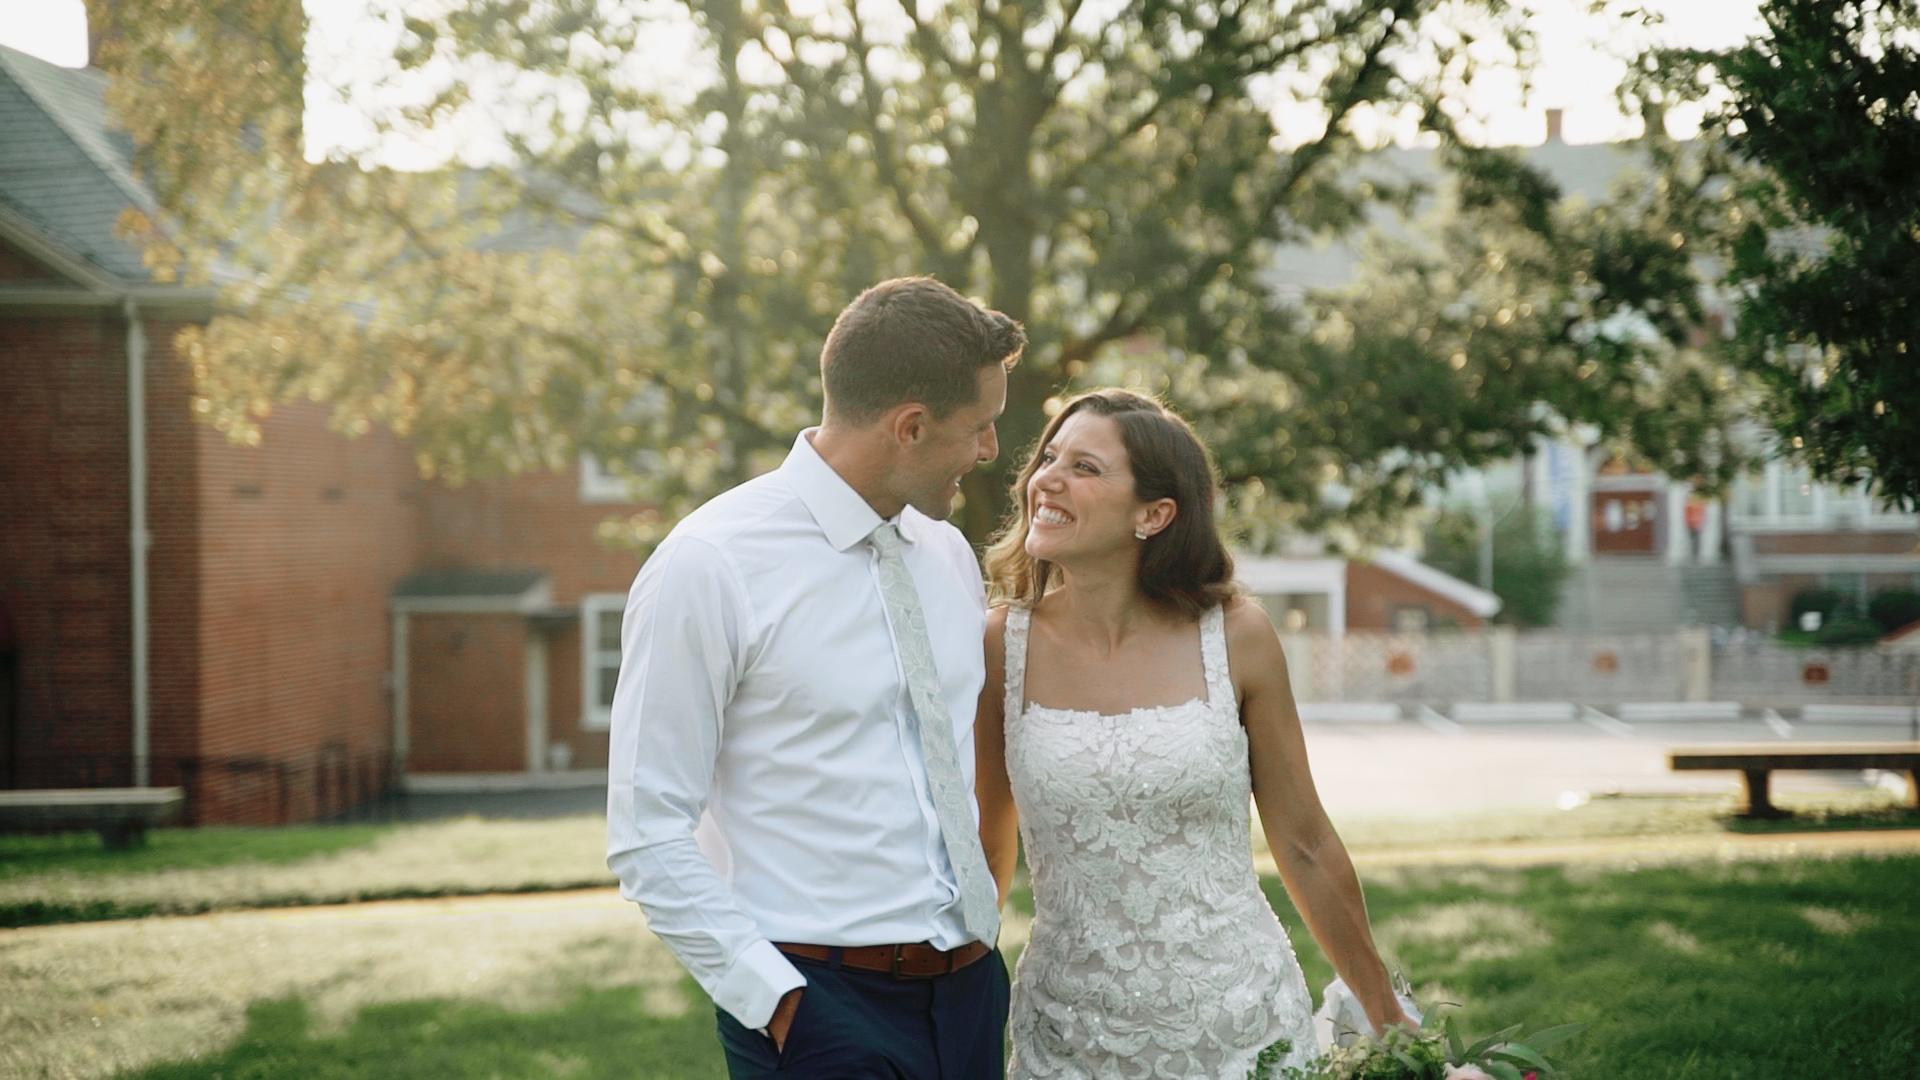 Megan + Grant | Charlottesville, Virginia | Common House